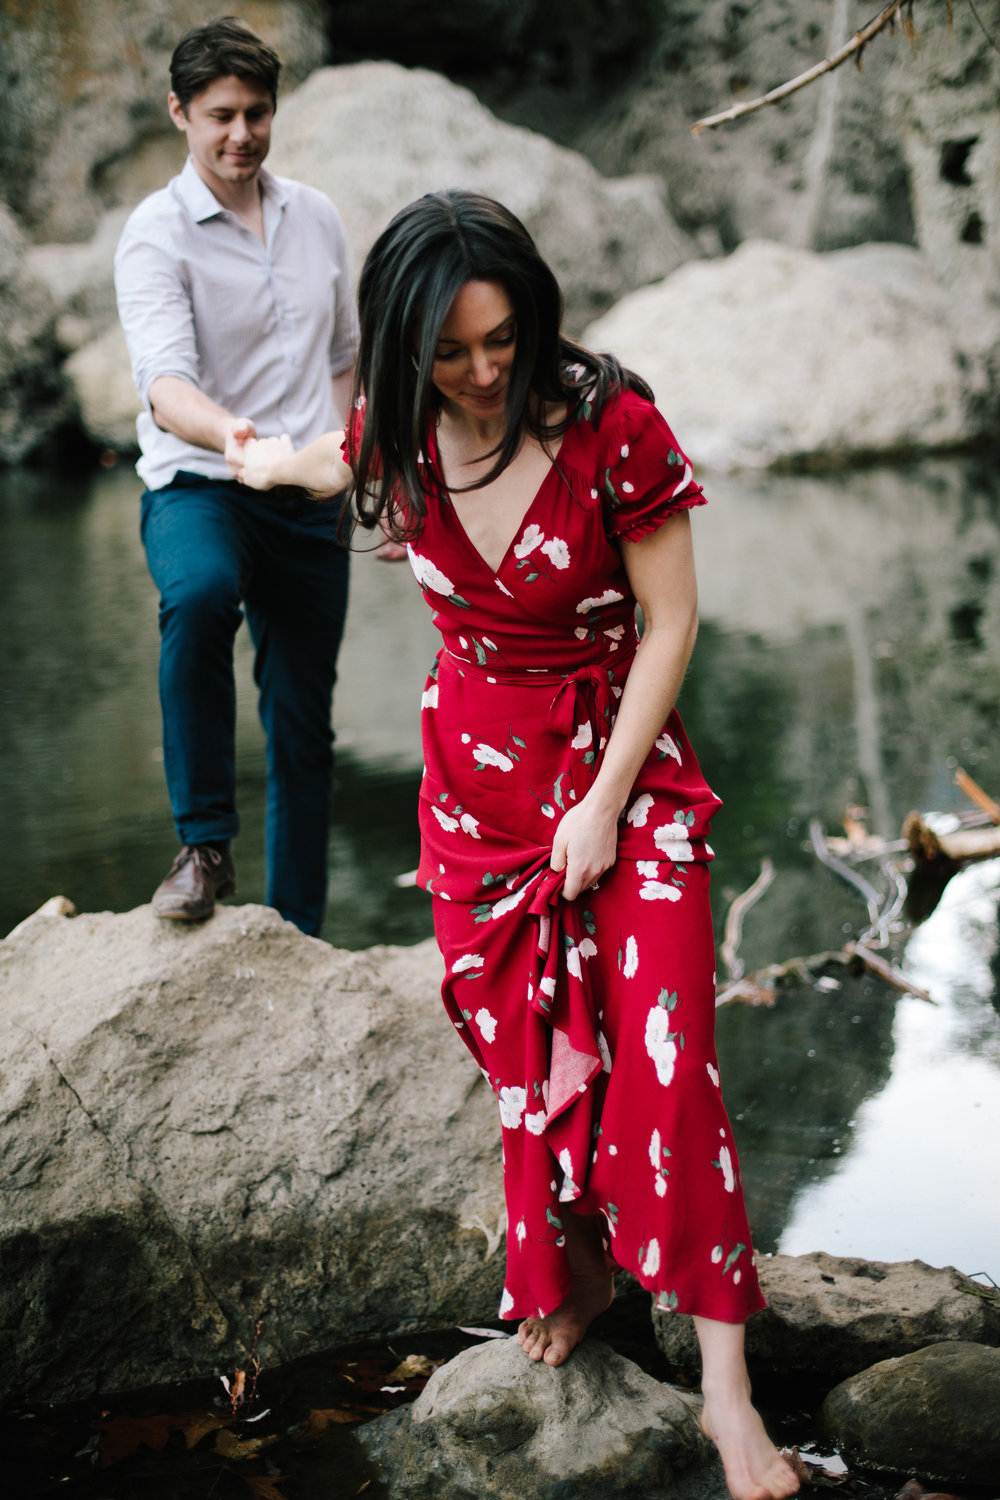 los angeles engagement photography-135.jpg